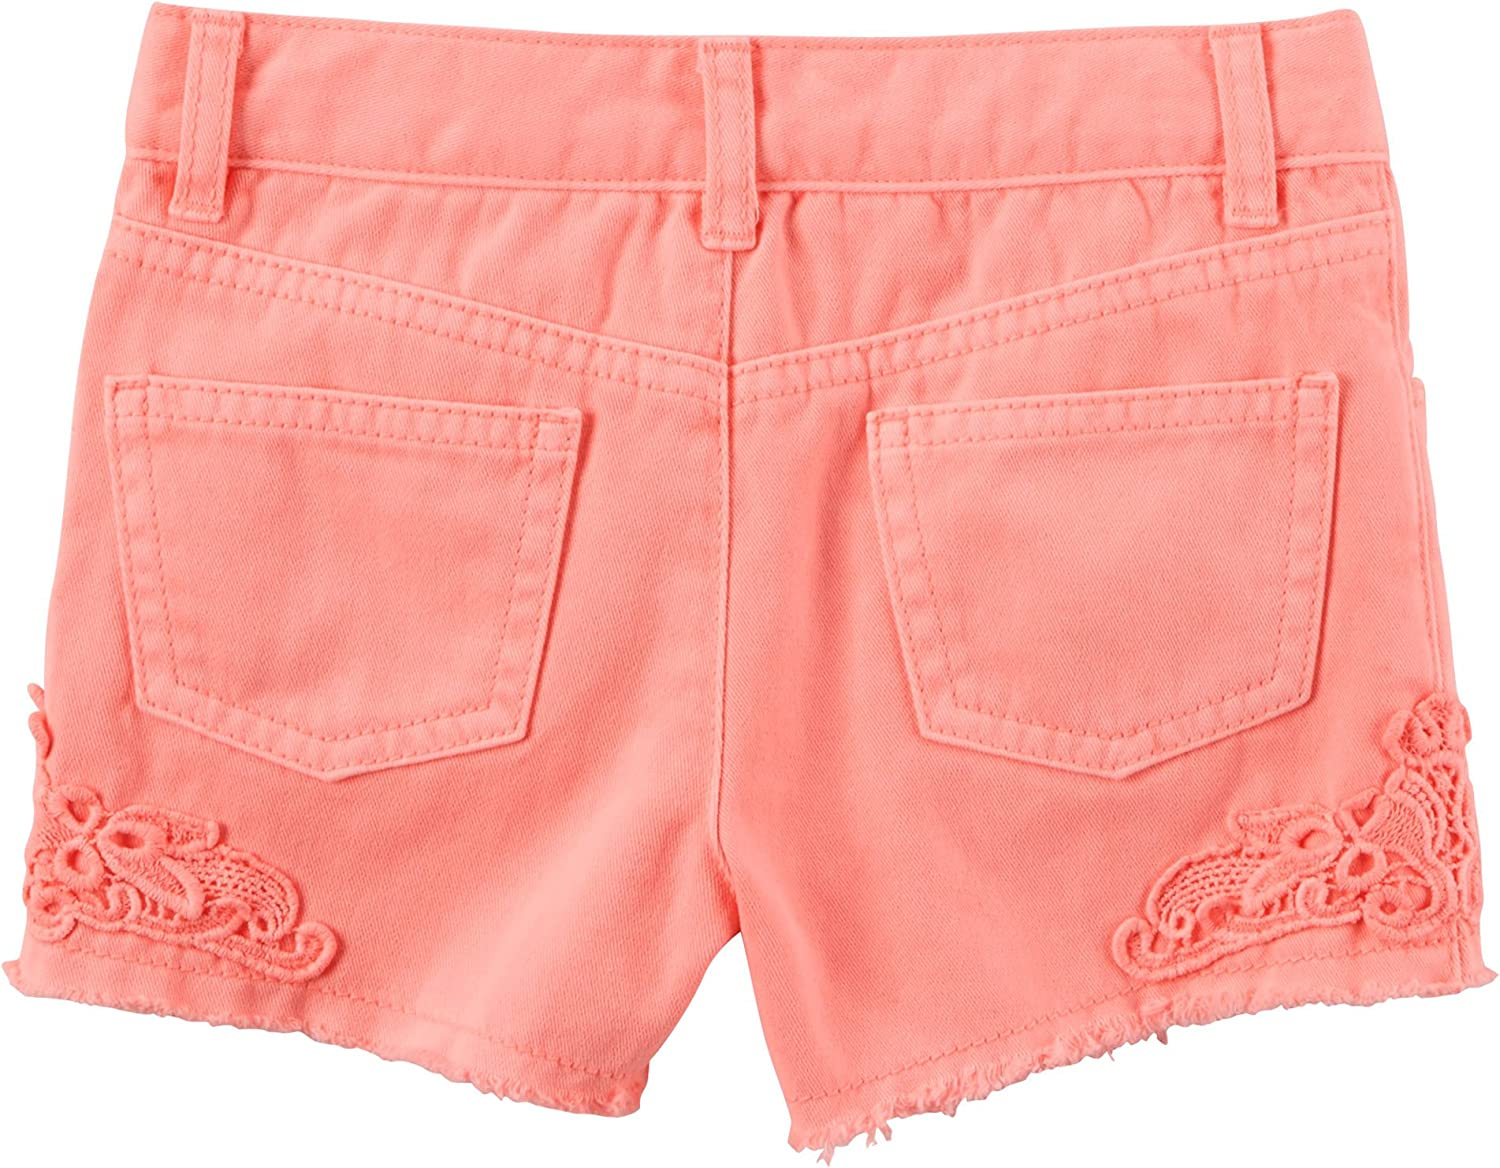 3 Months Orange Carters Baby Girls Lace Twill Shorts